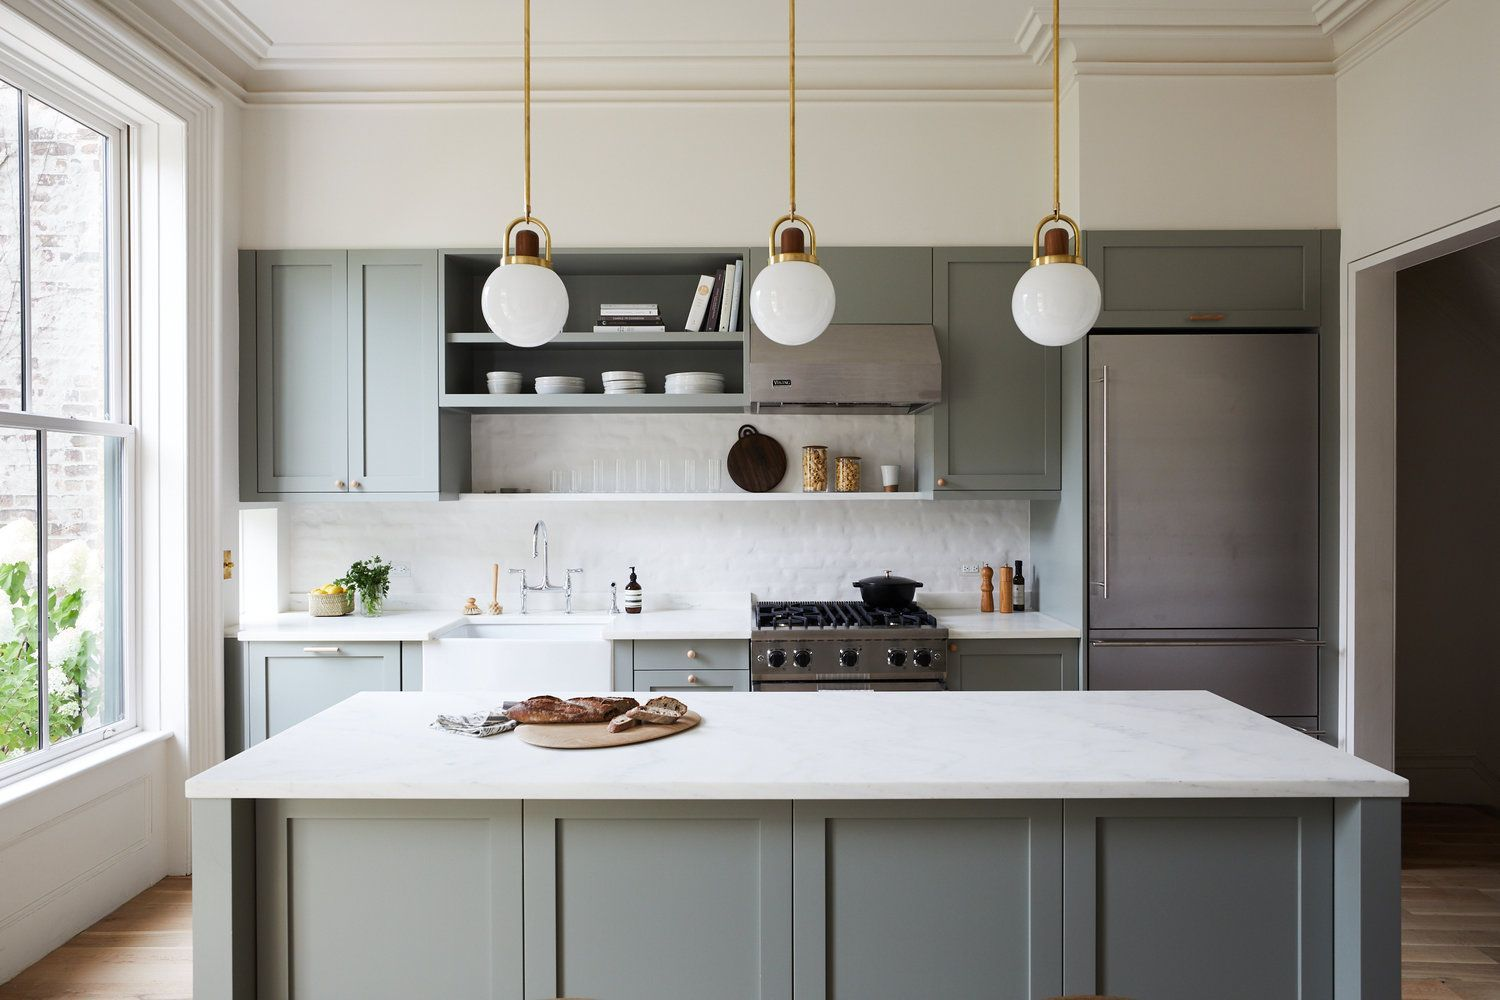 Kitchen Cabinet Design Ideas For Your Home Don T Miss It In 2020 Kitchen Cabinet Design Brooklyn Kitchen Ikea Kitchen